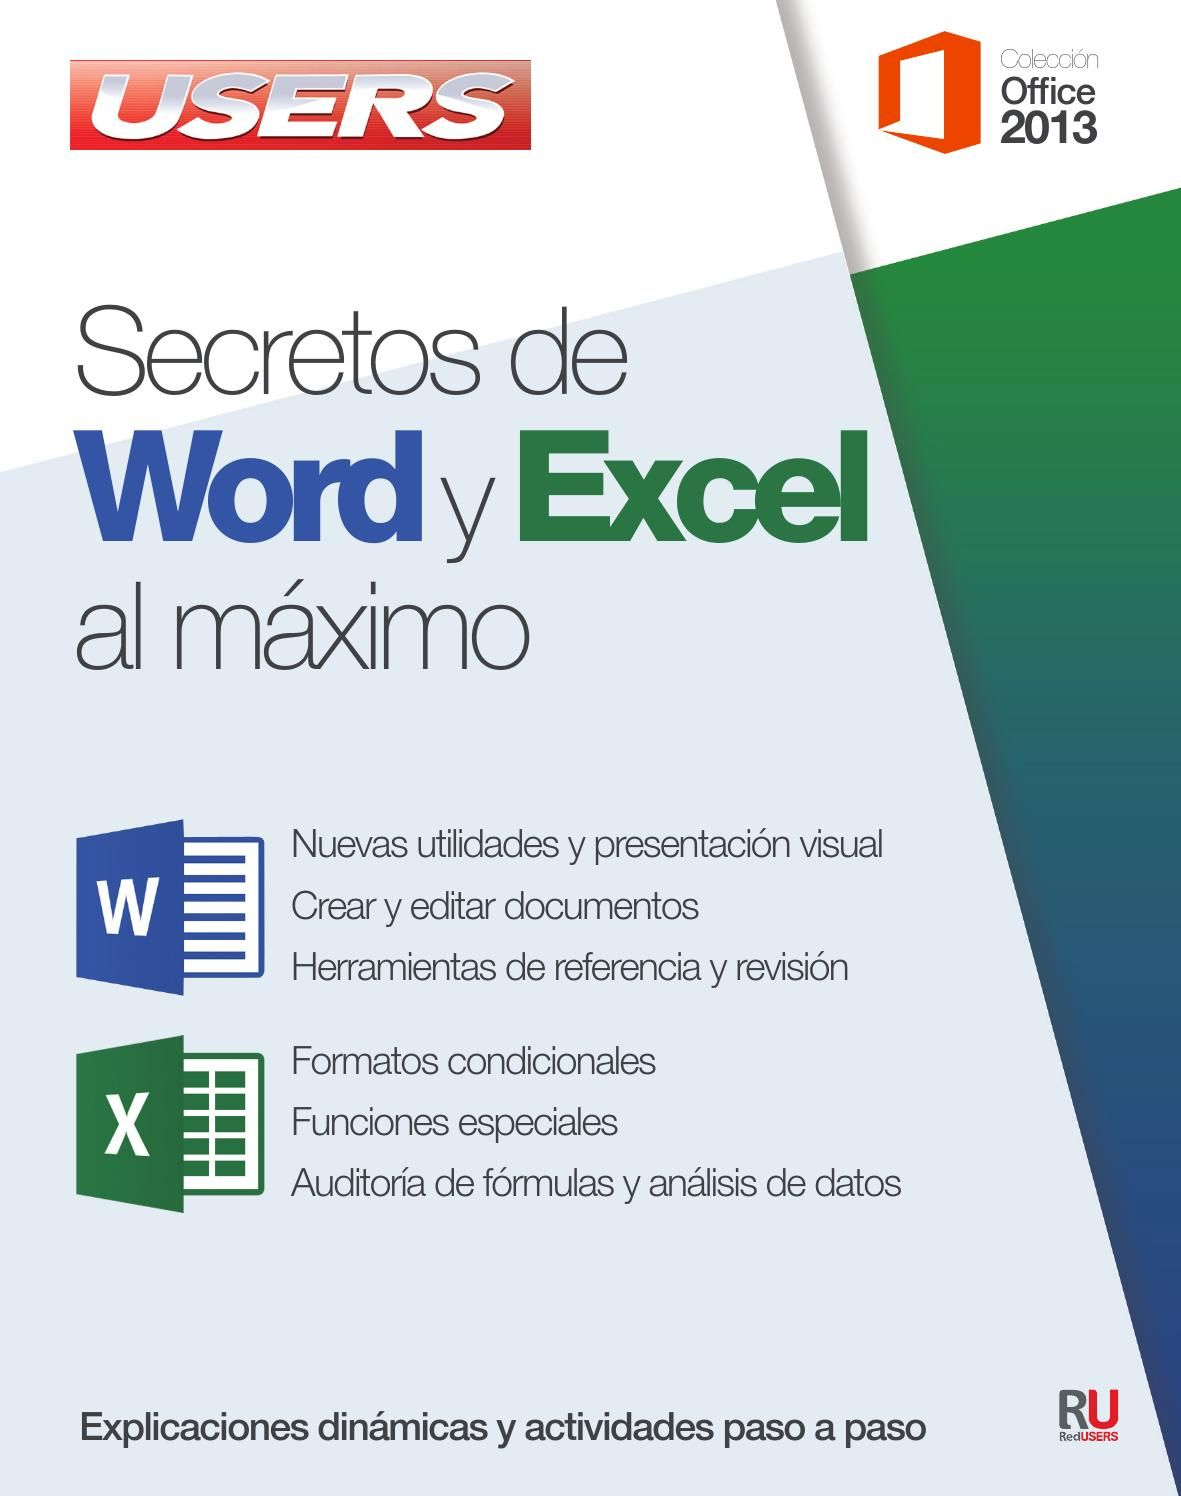 Secretos de word y excel al maximo | School, Study techniques and ...